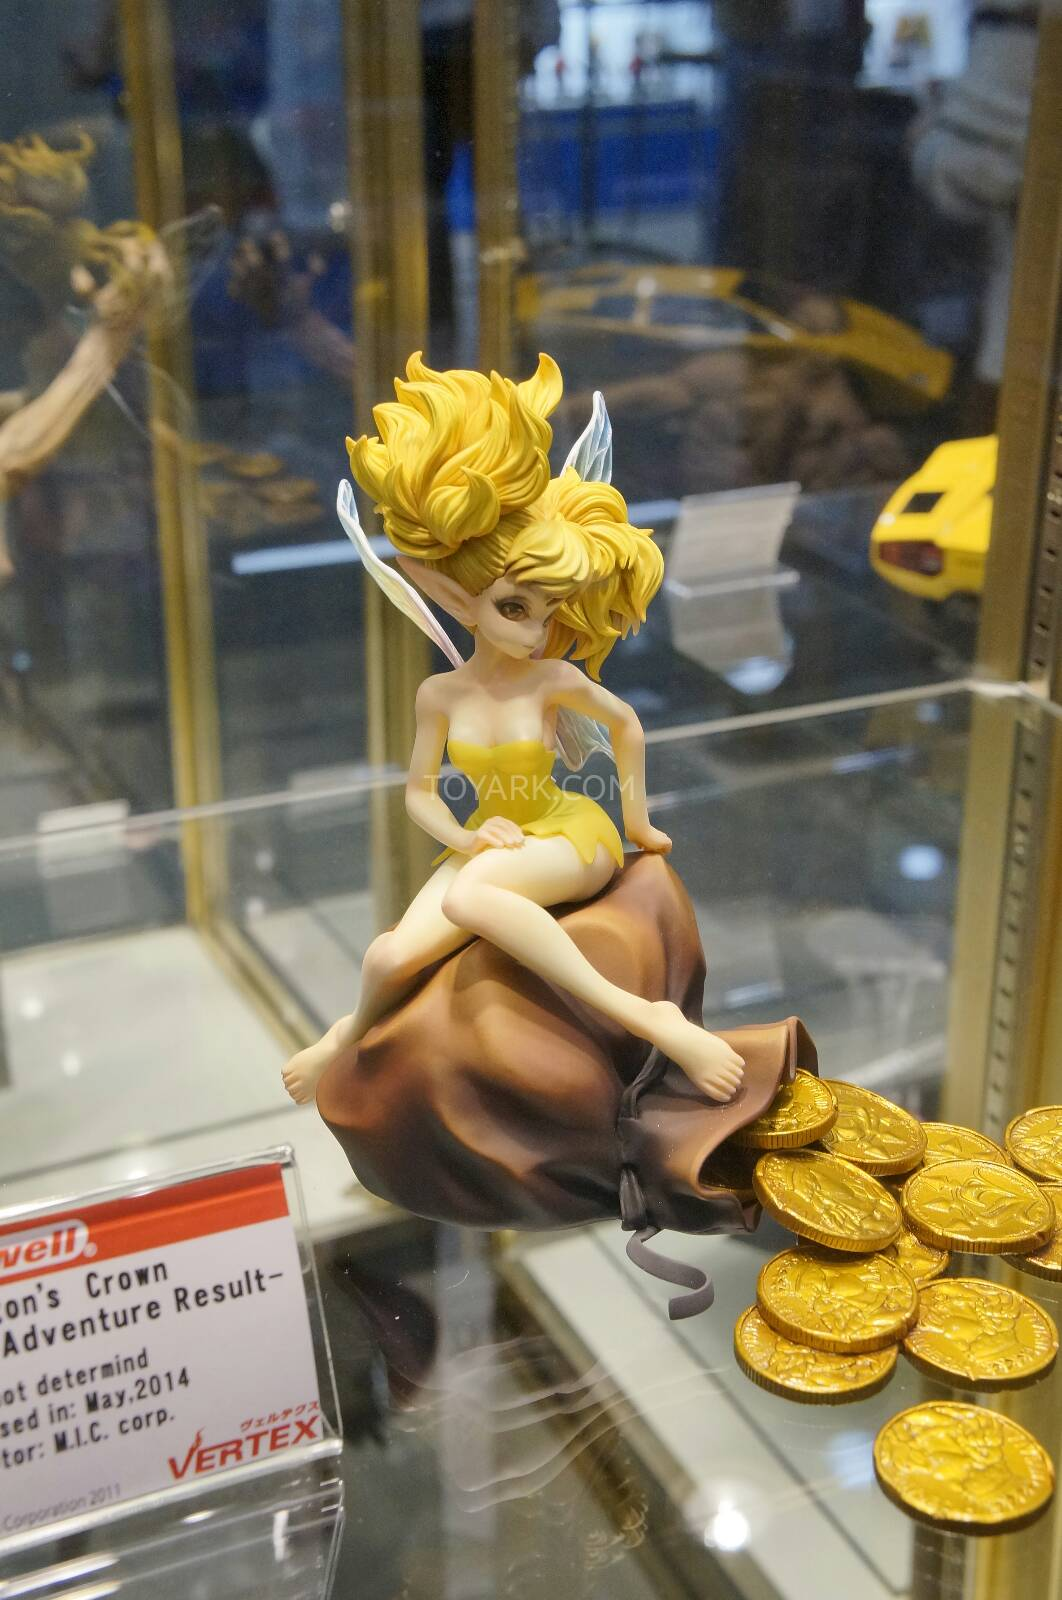 [EVENTO] Toy Fair 2014 - Good Smile Company / Max Factory / Phat Company / FREEing Toy-Fair-2014-Good-Smile-and-Max-Factory-Display-053